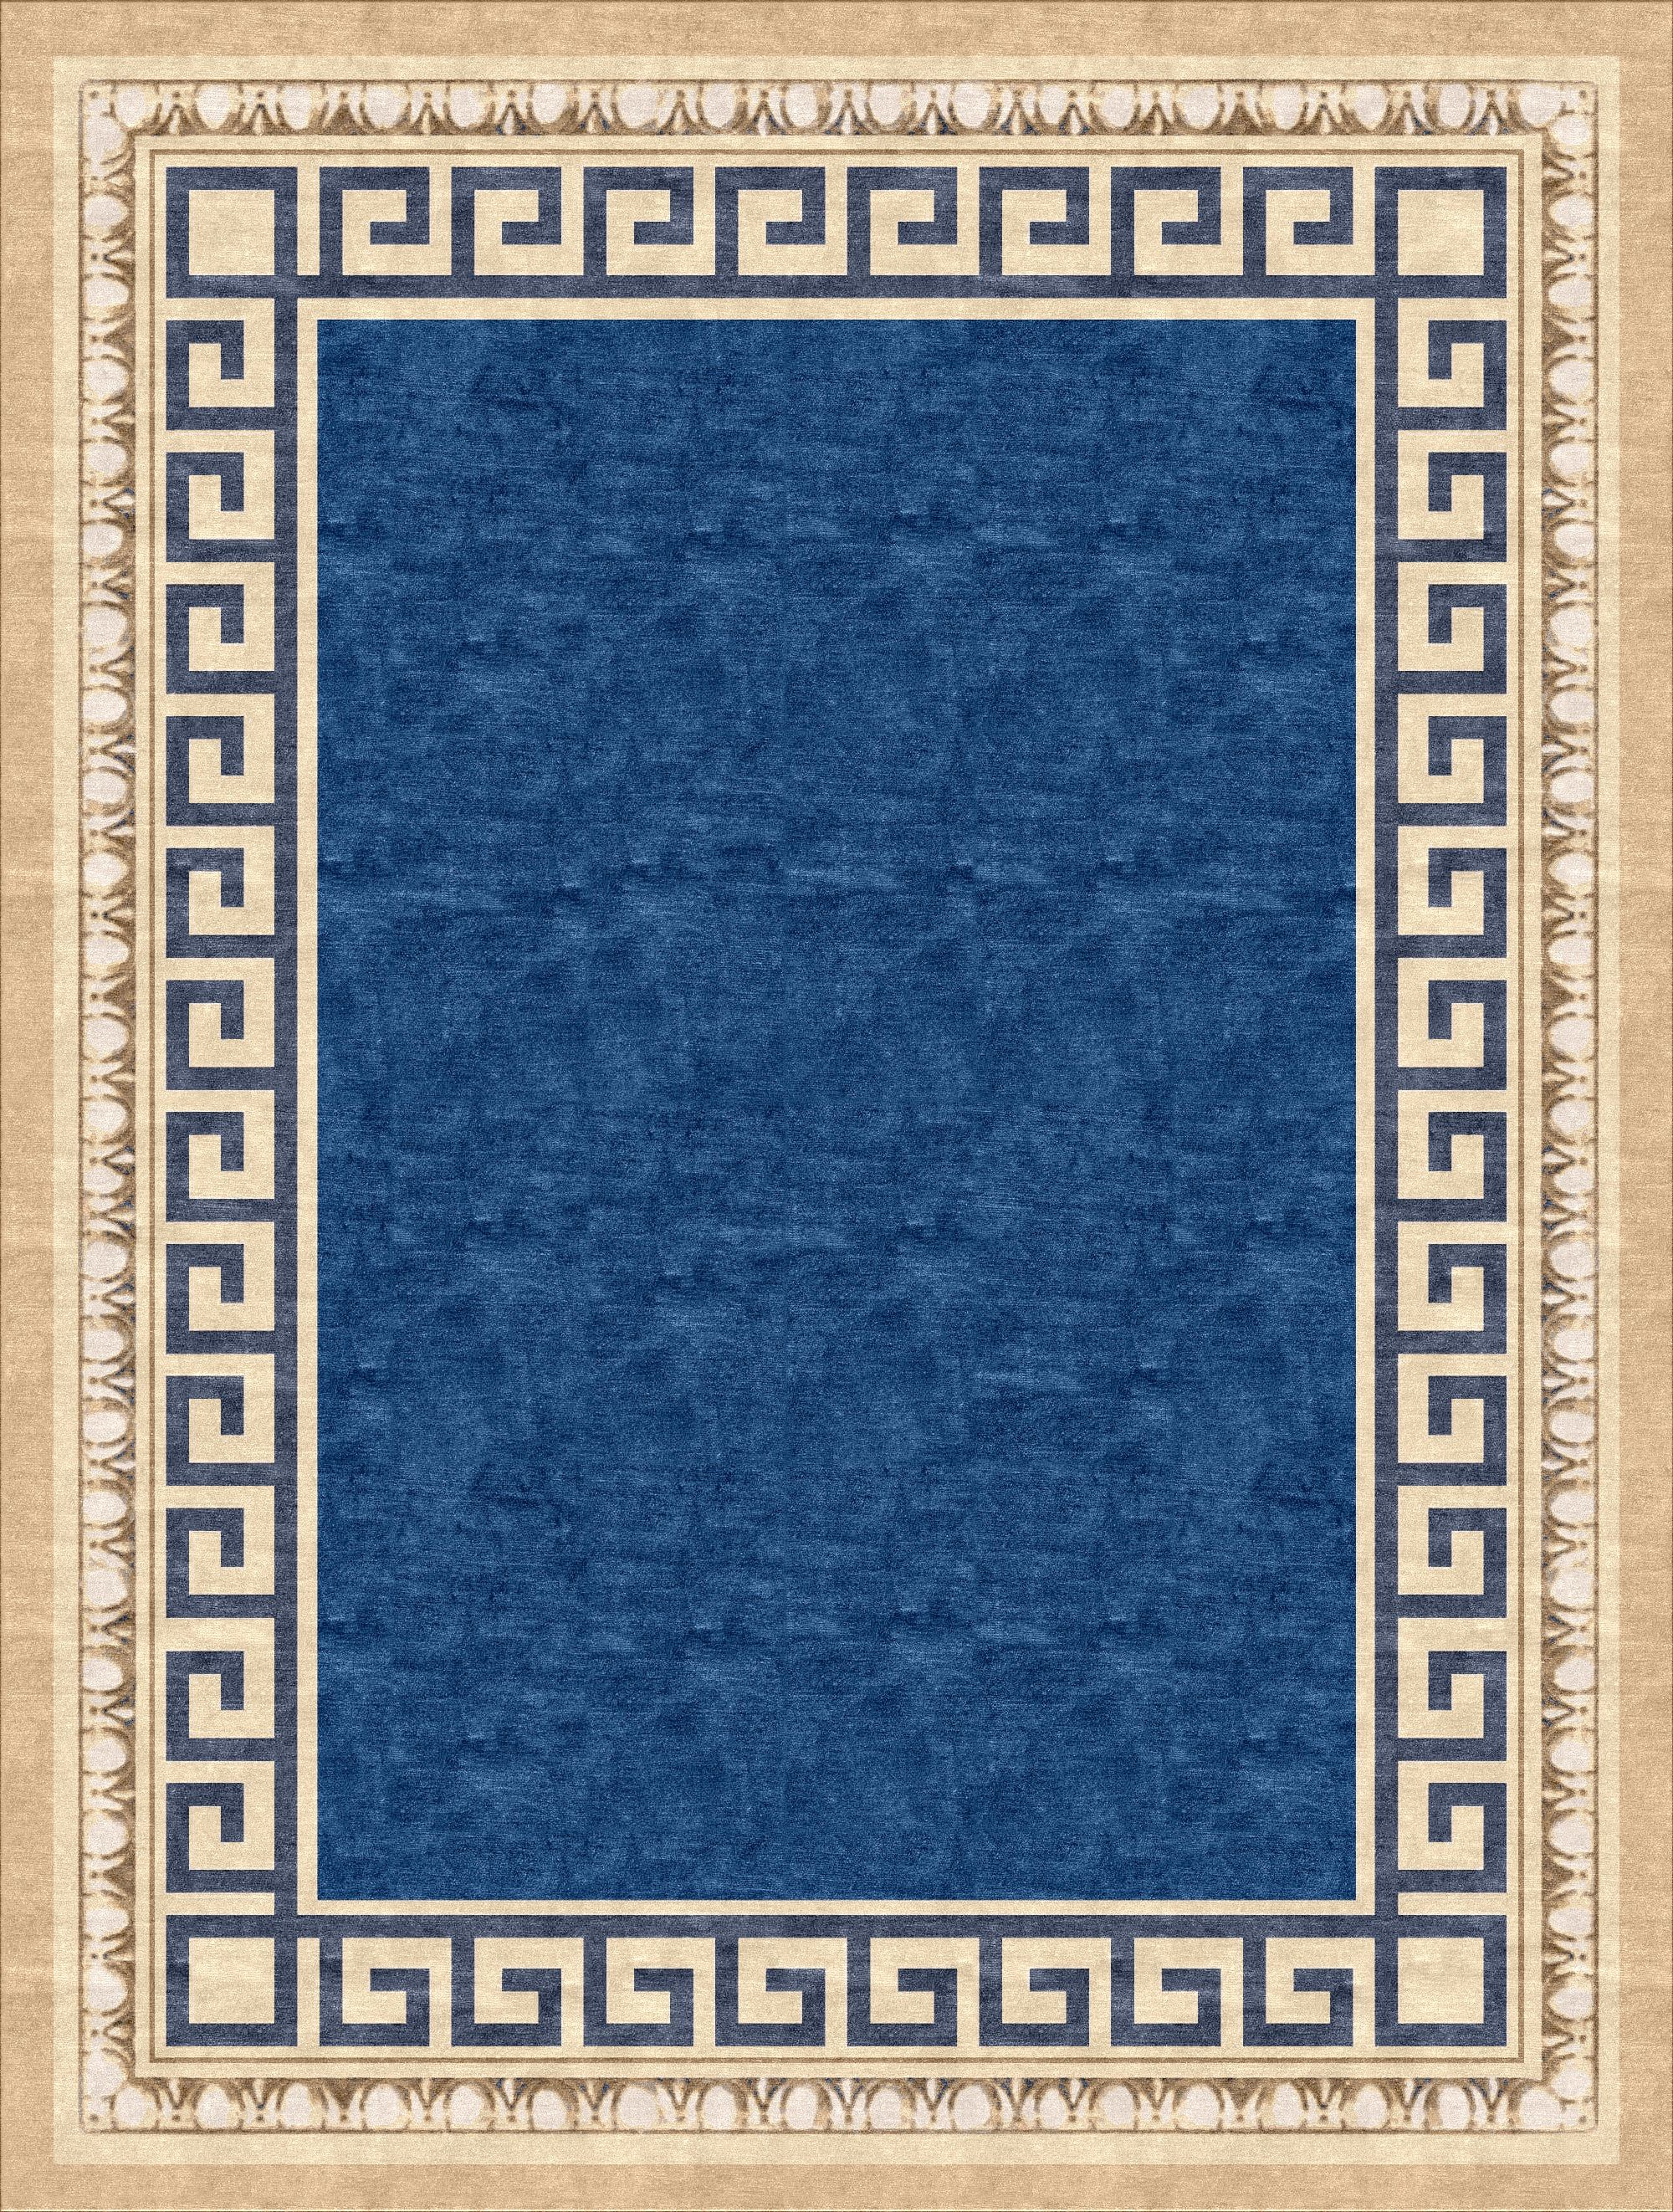 Handtufted rug based on a hand painted wall in the capital building